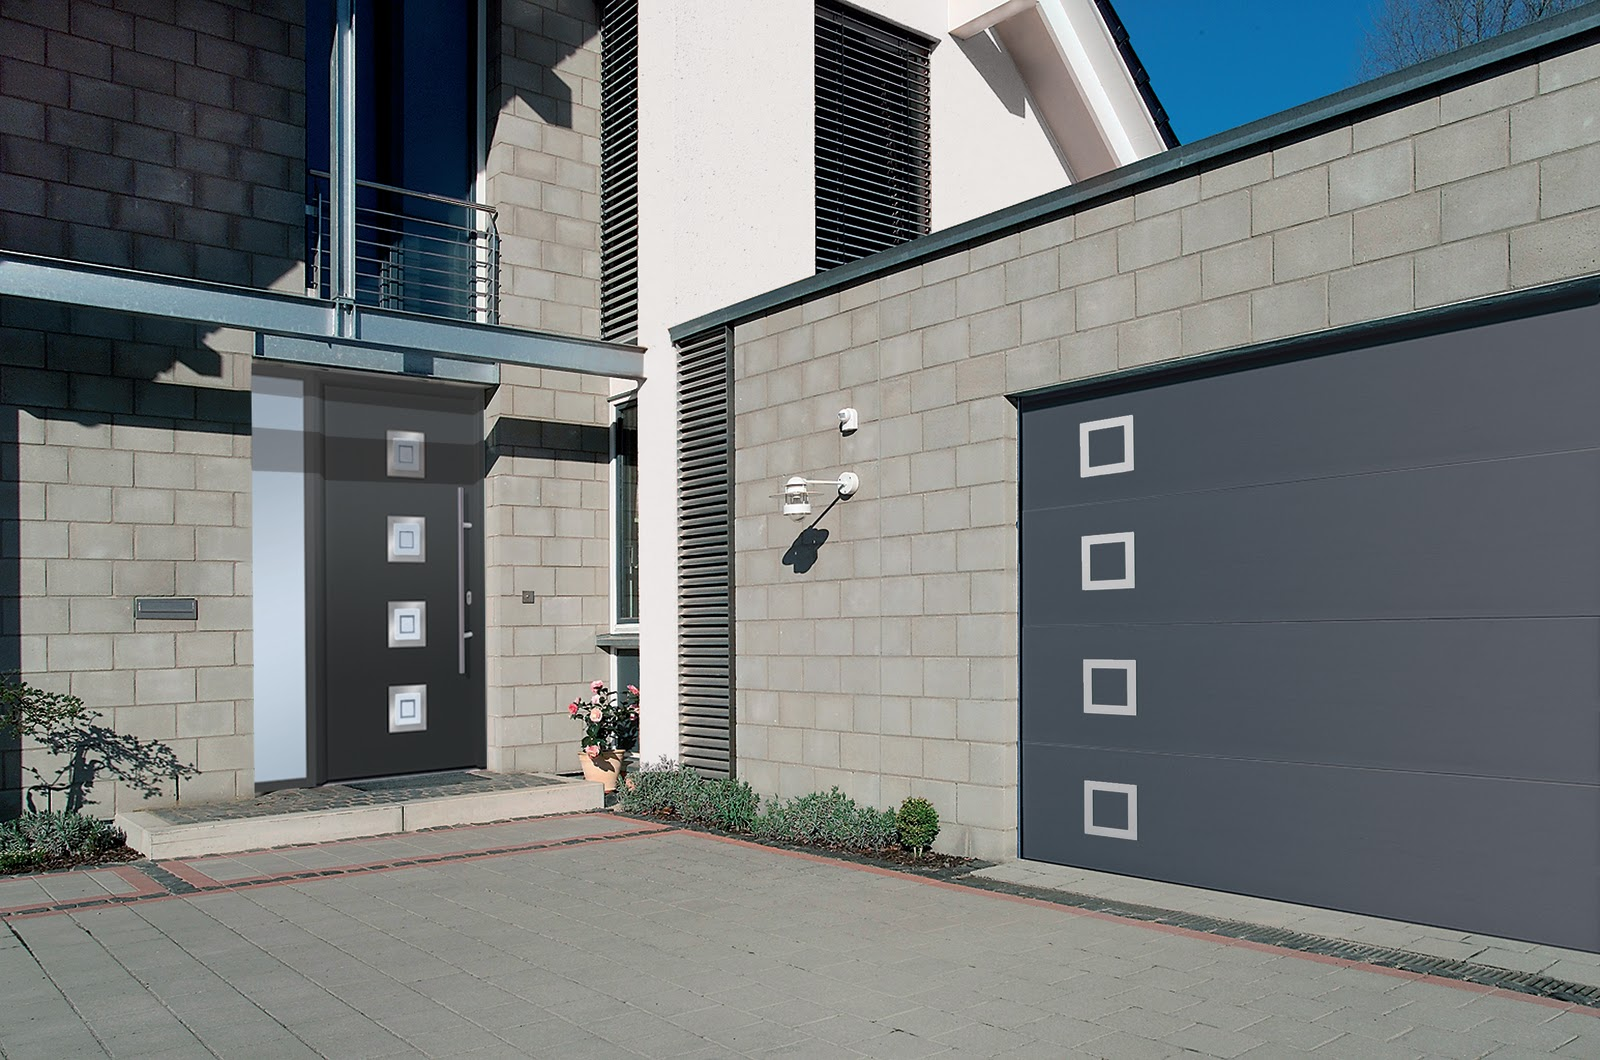 1060 #0D71AE Modern And Contemporary Garage Doors Designs save image Stylish Garage Doors 37871600